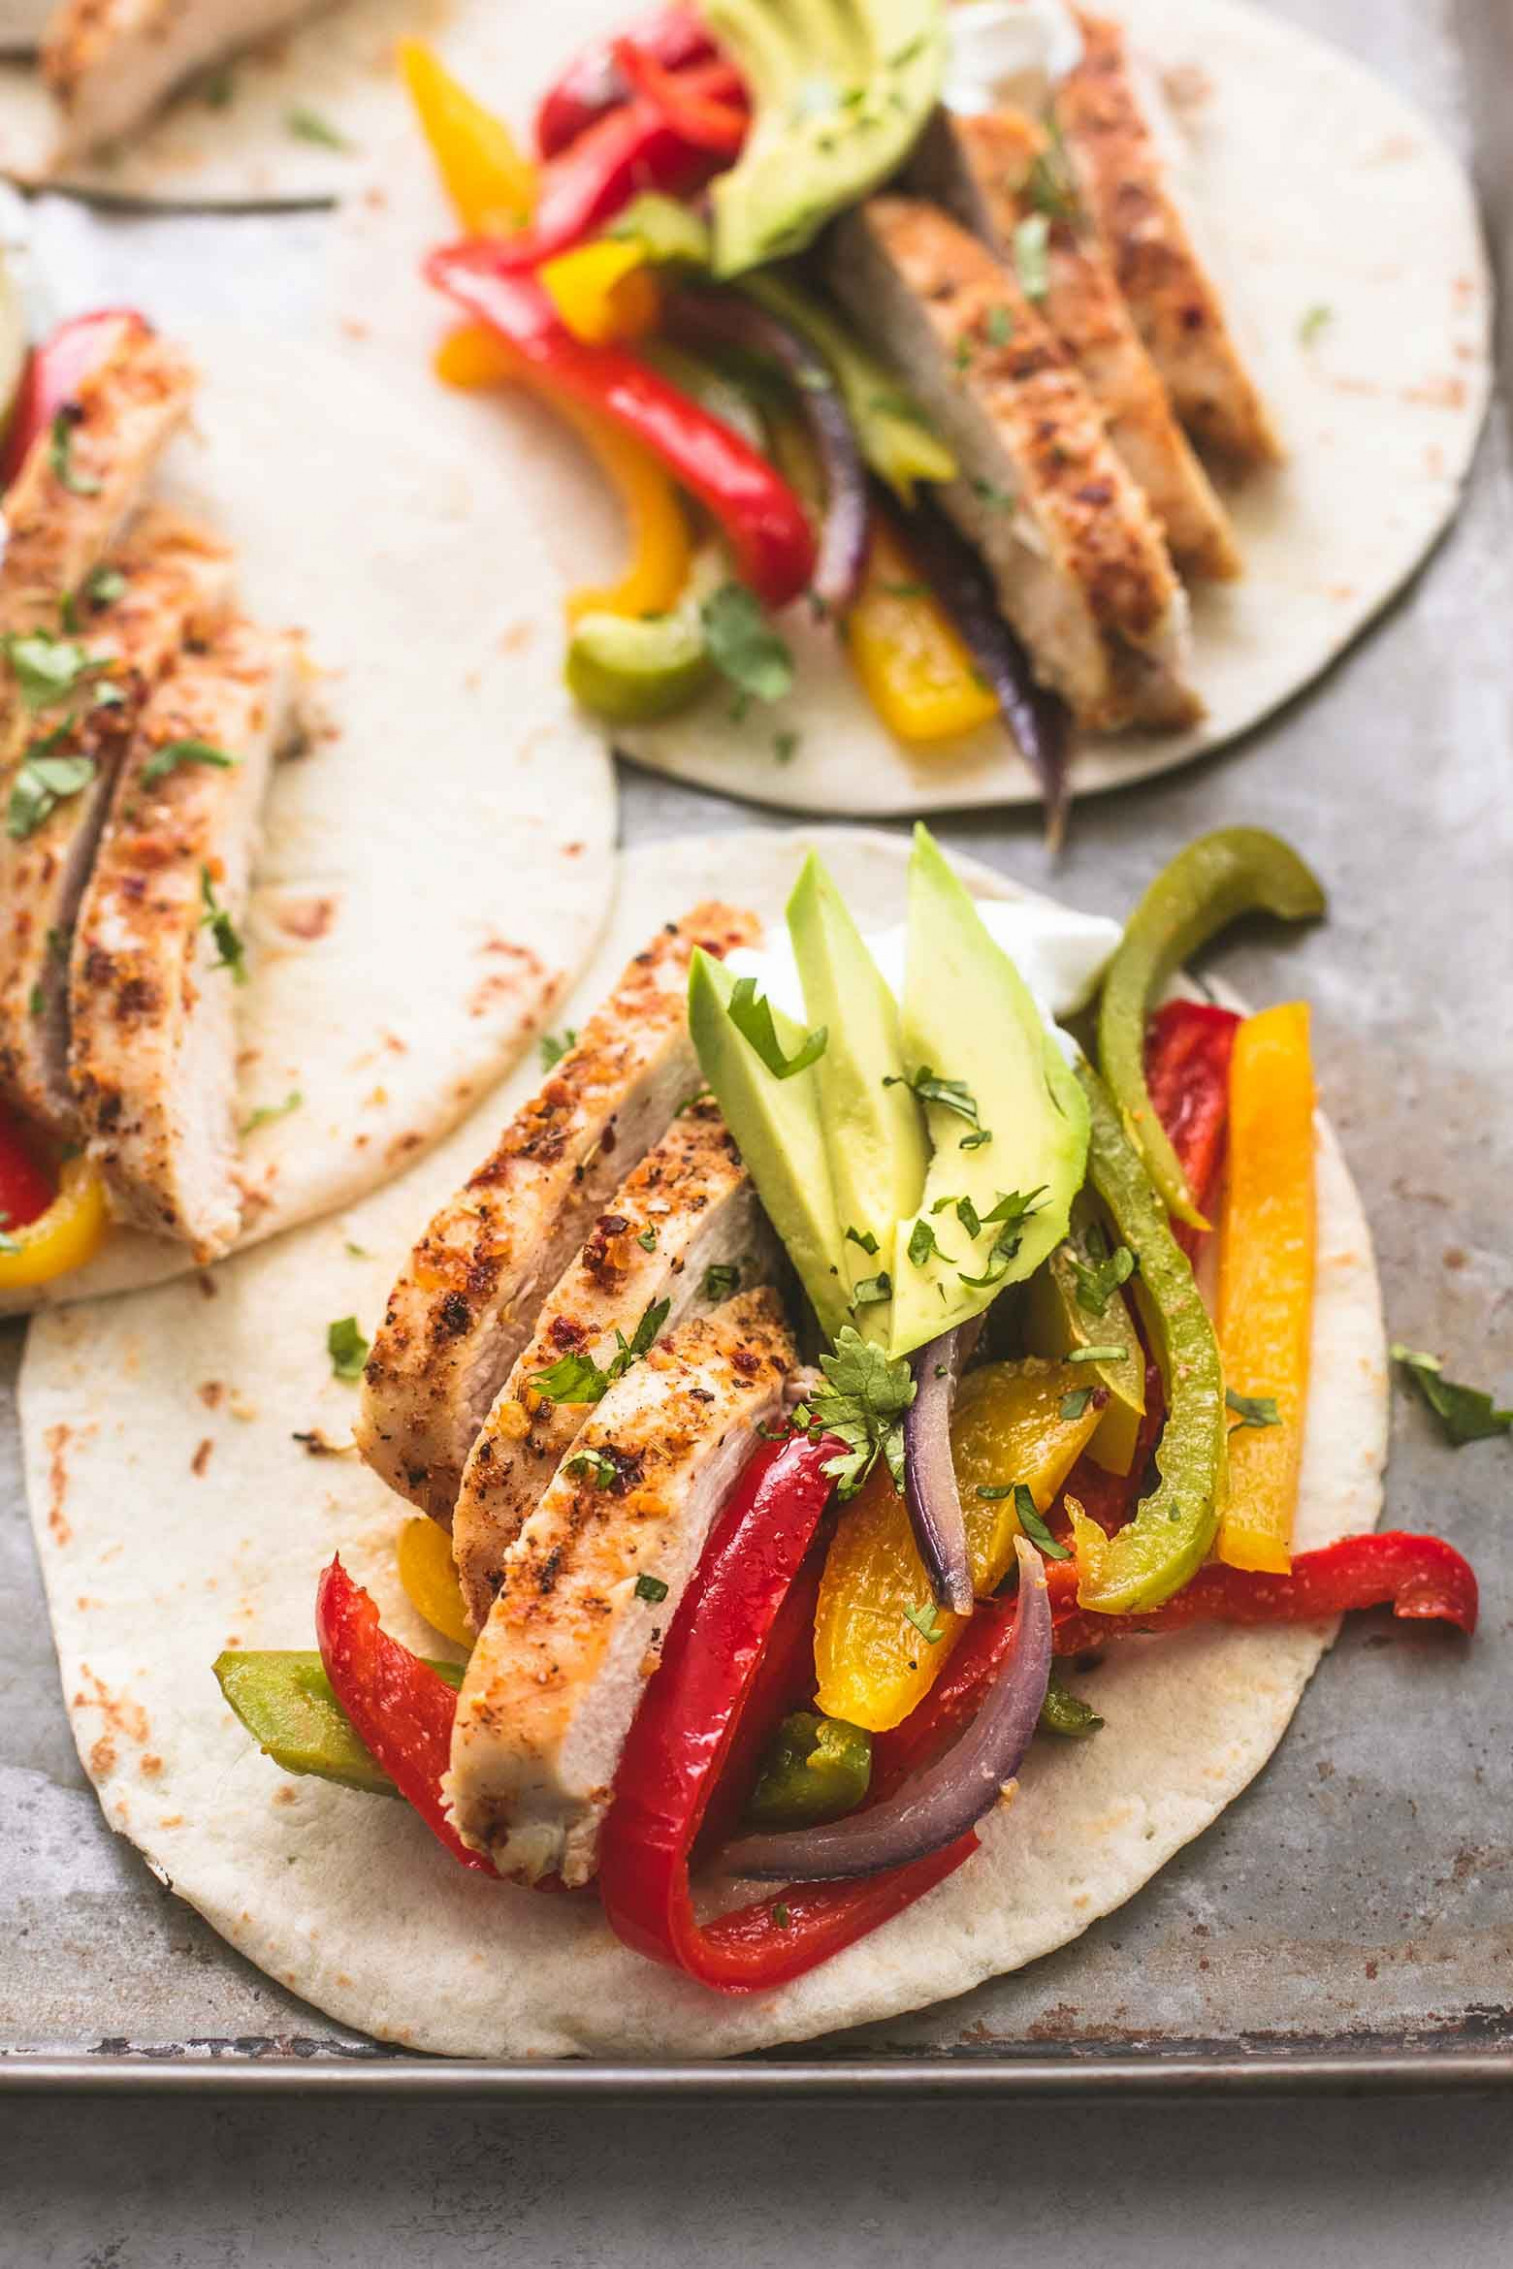 10 Easy Healthy Dinner Recipes - Best Healthy Meal Ideas For ..